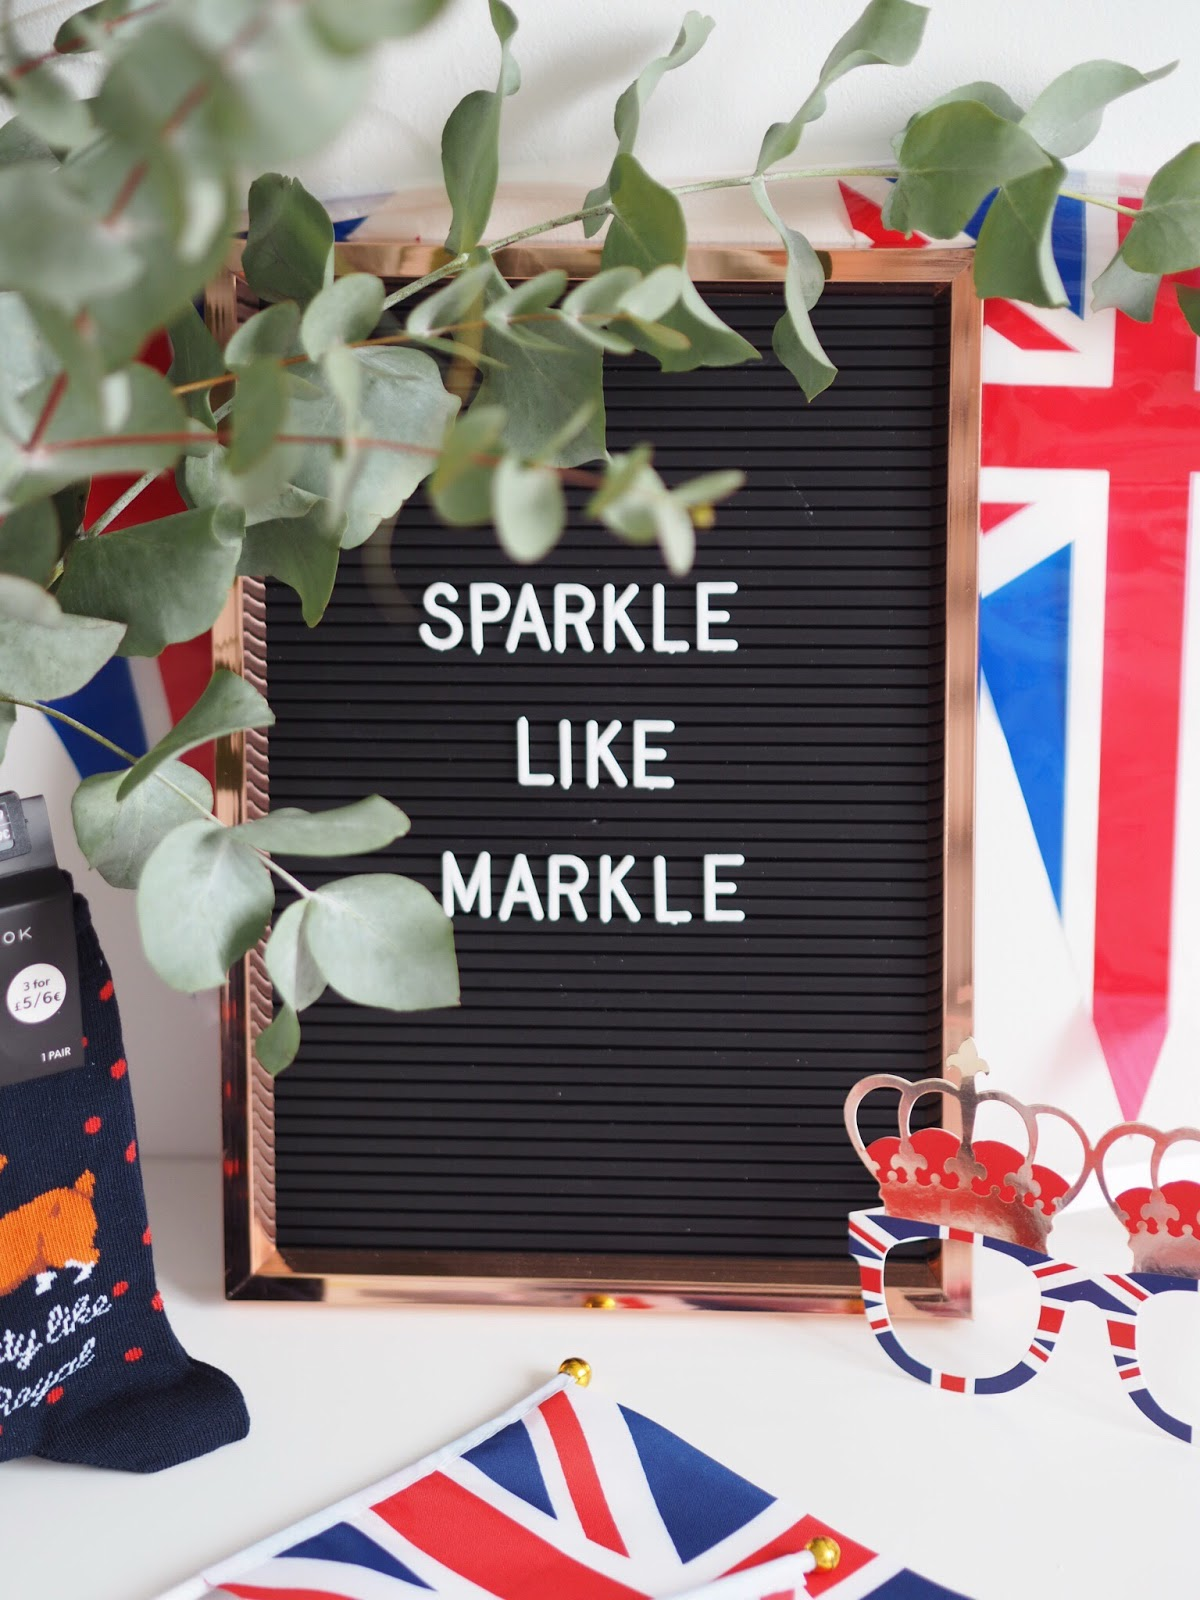 Primark Copper Peg Board with Sparkle Like Markle written on with union jack memorobillia